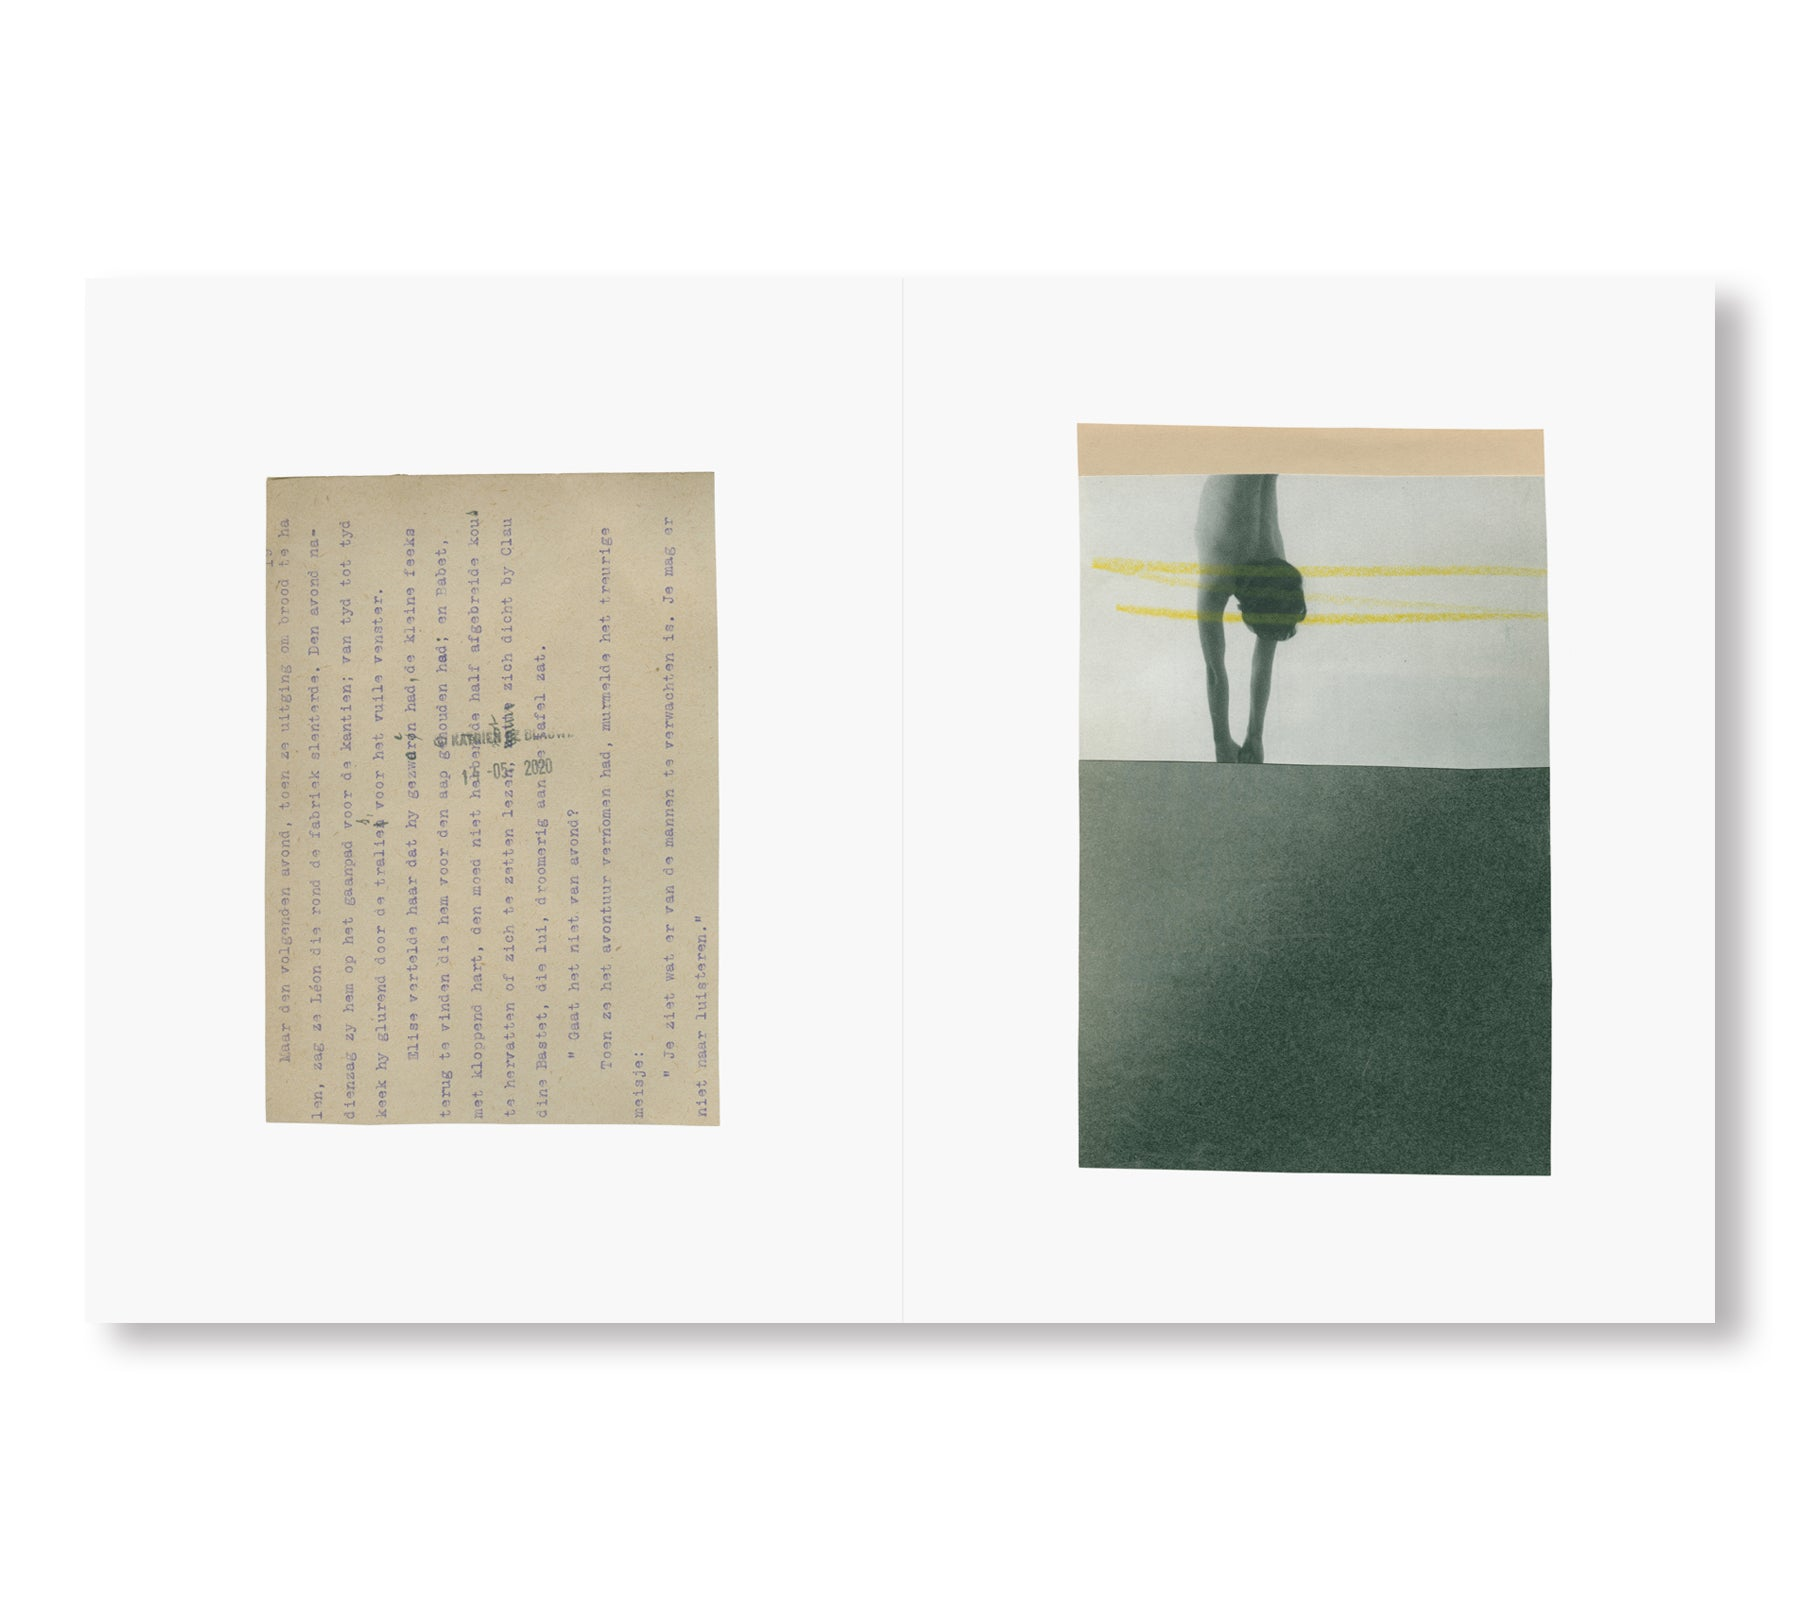 YOU COULD AT LEAST PRETEND TO LIKE YELLOW  by Katrien De Blauwer